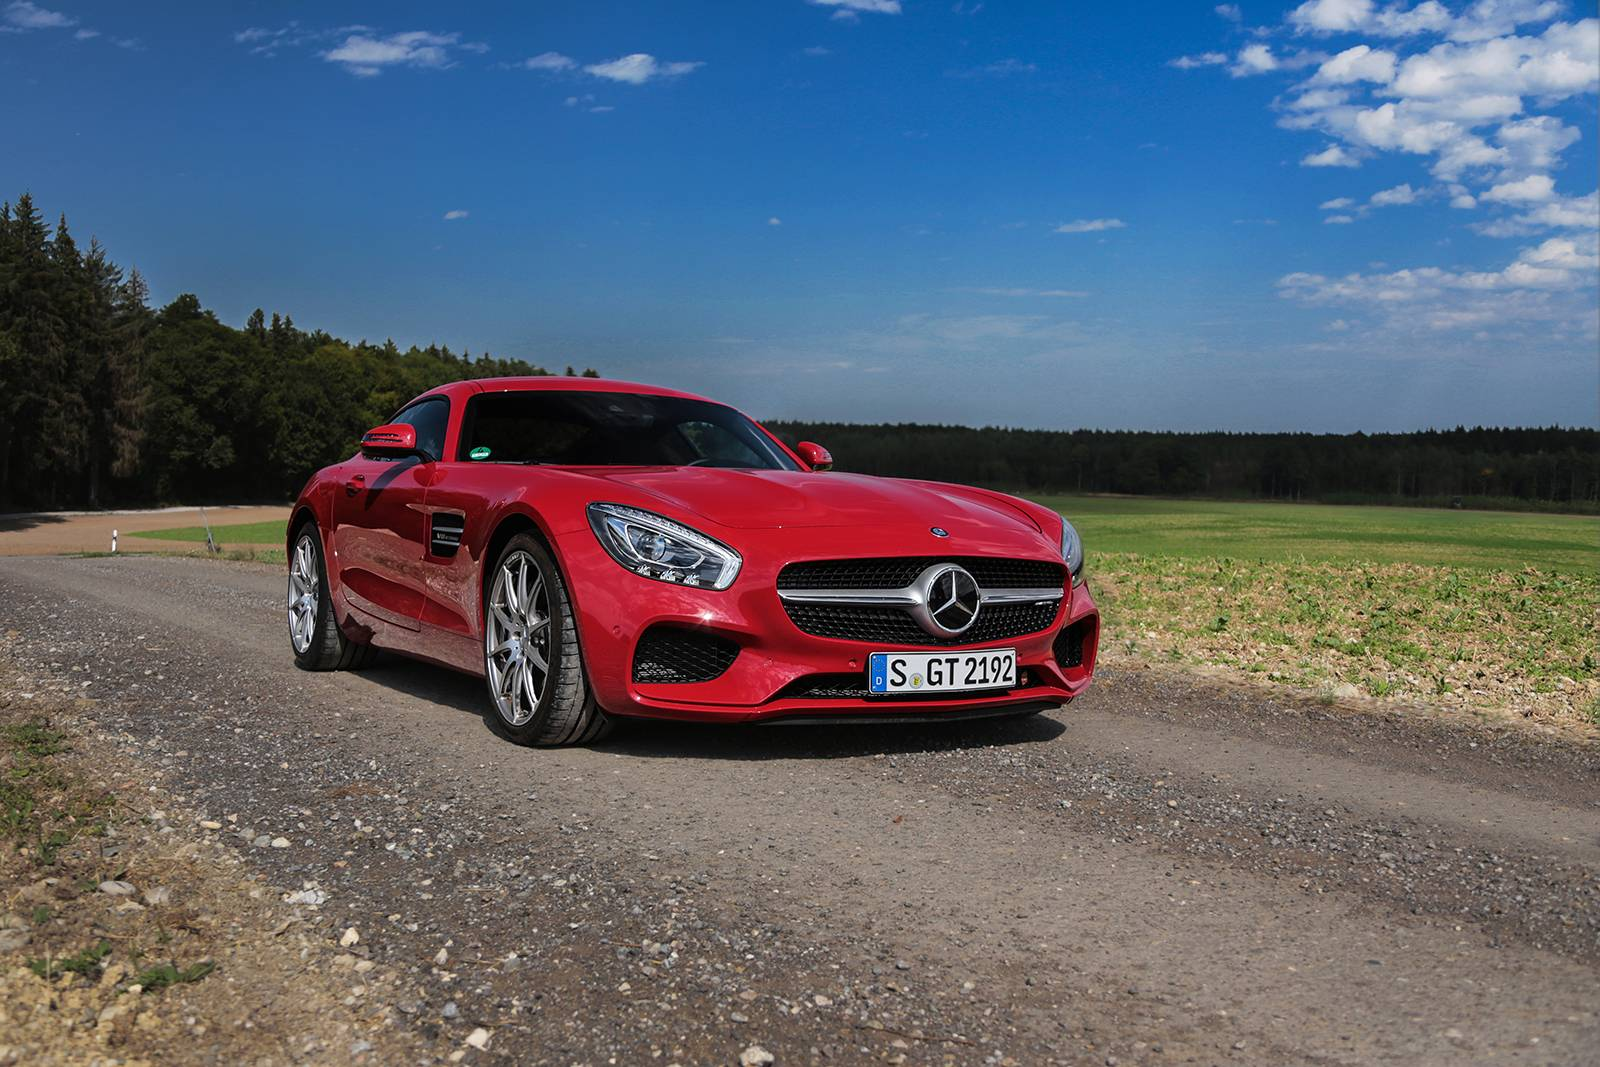 2016 Mercedes-AMG GT Review